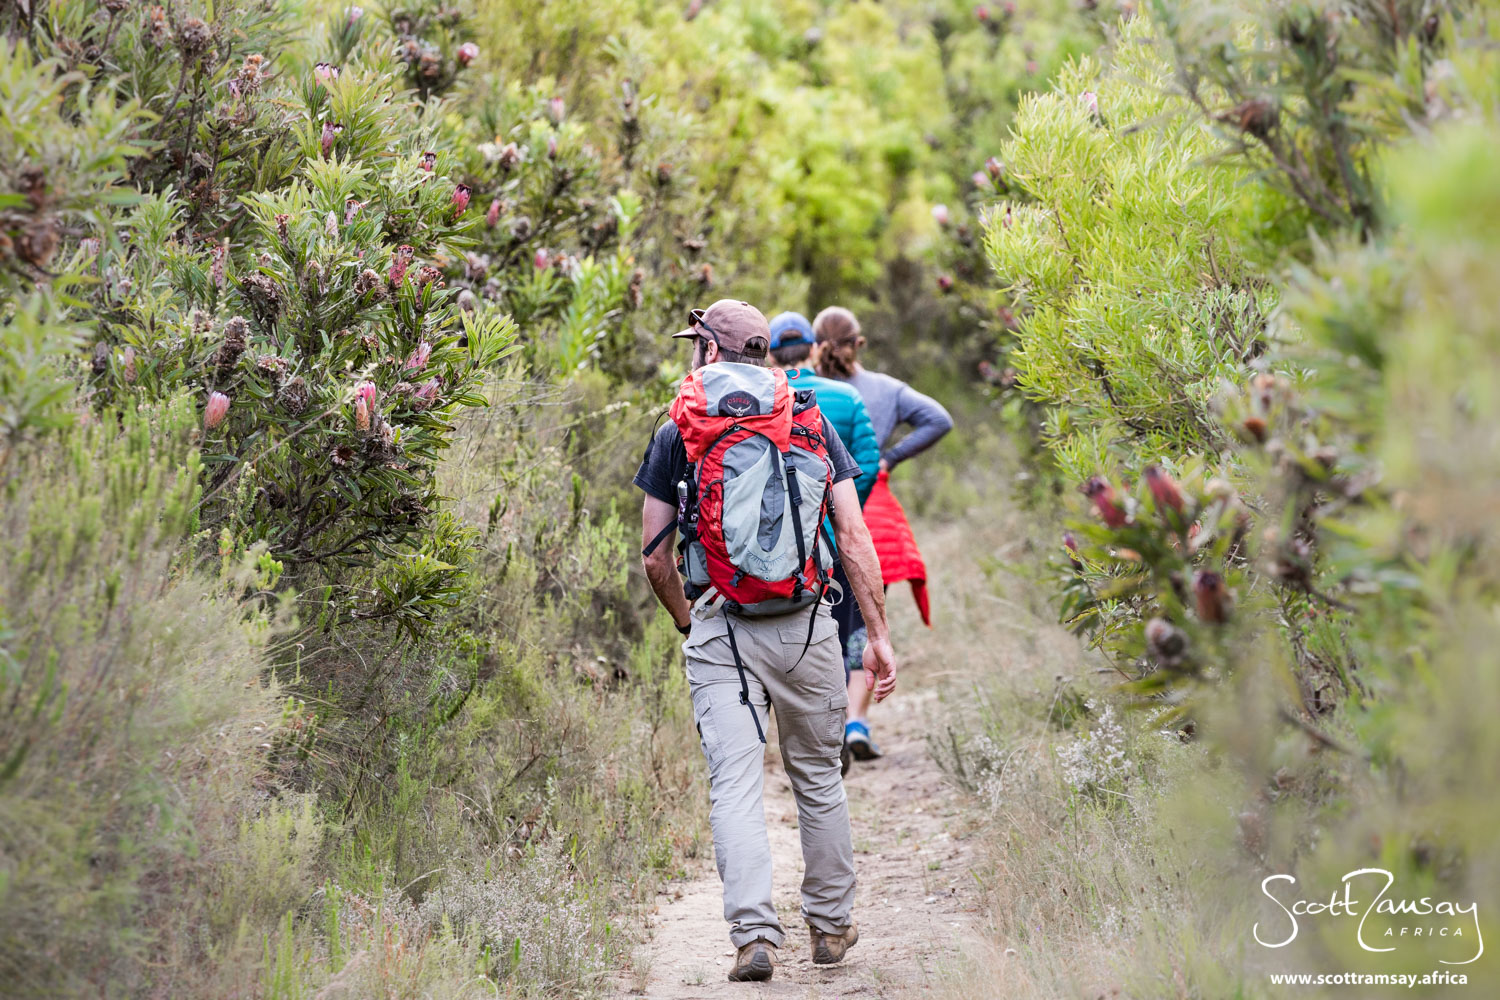 In places, the fynbos in Marloth is twice the height of a person.